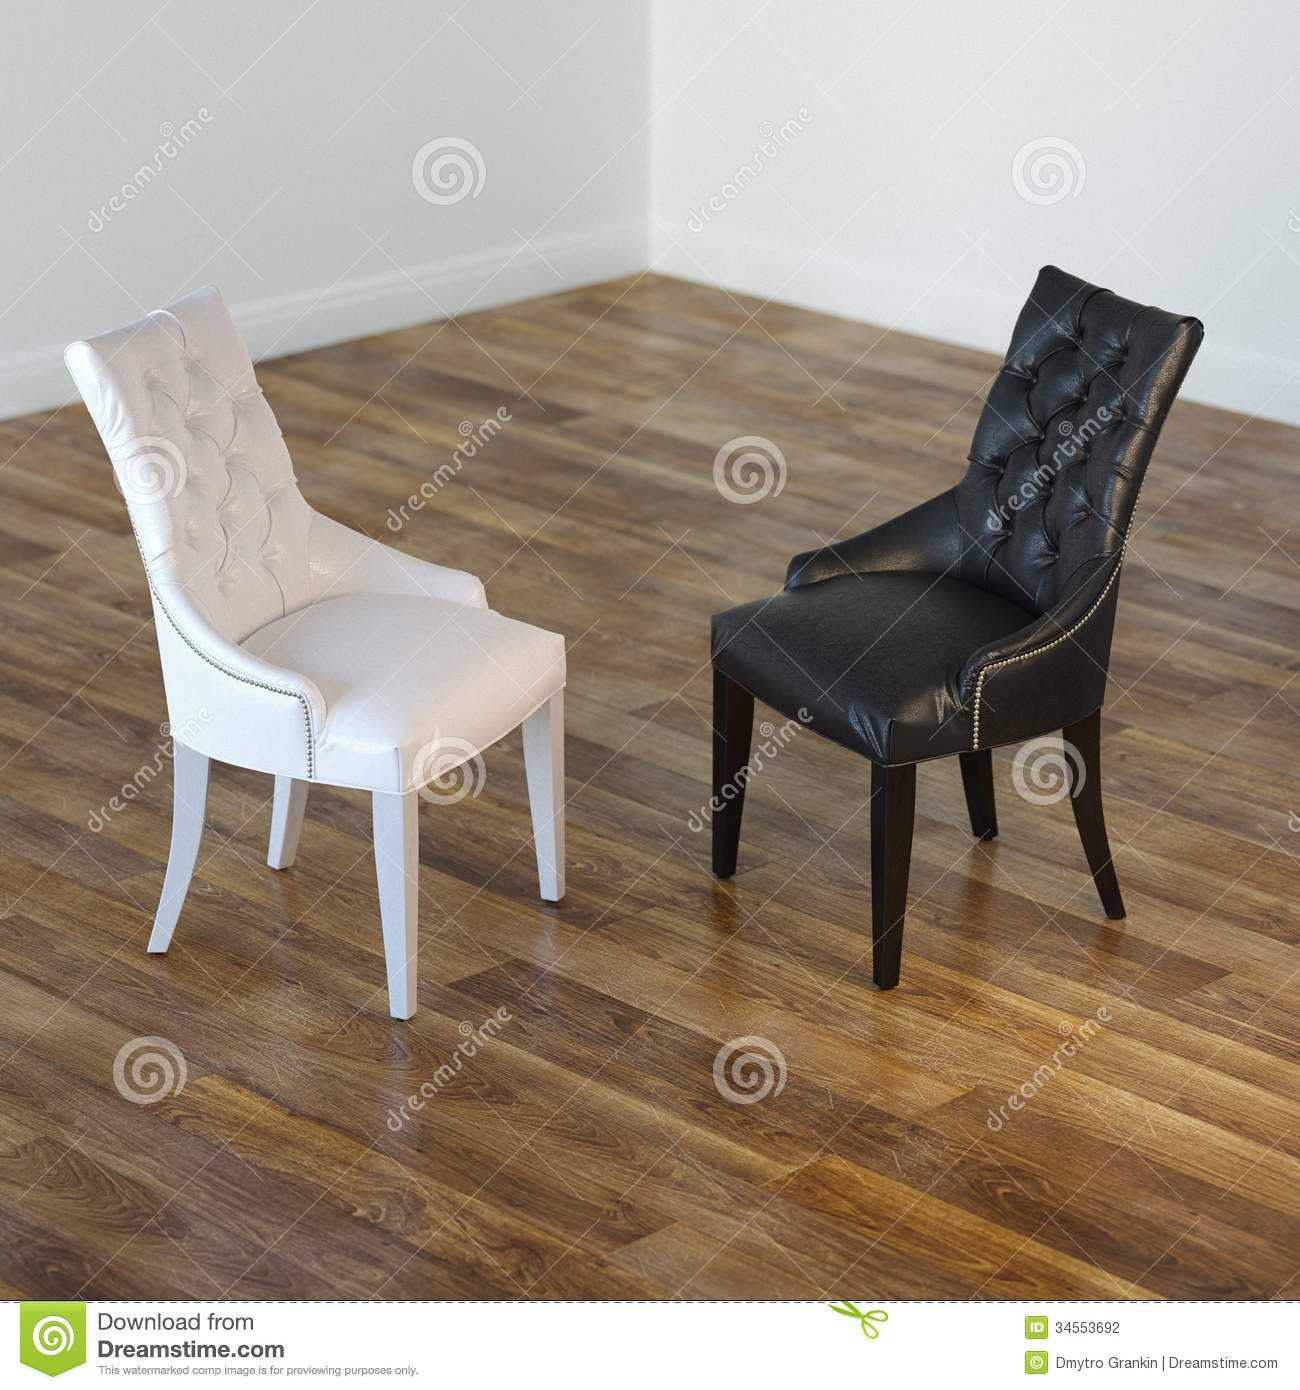 Interior Room With Black And White Chairs Stock Photography -  black and white chairs